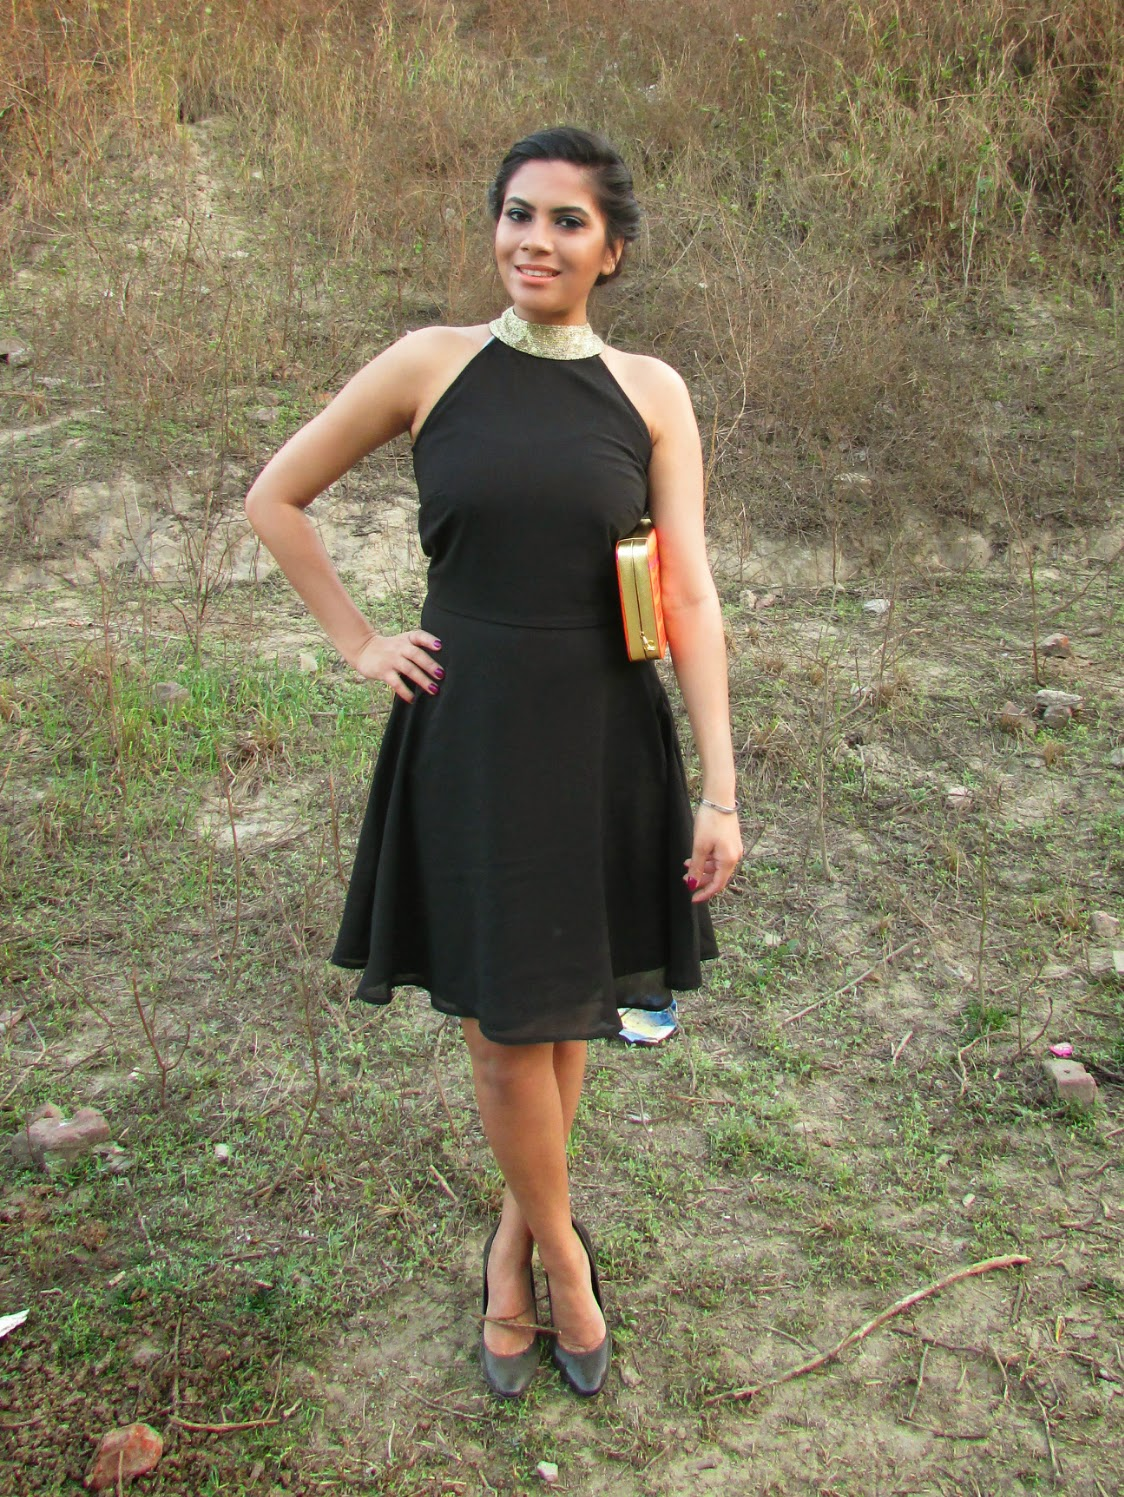 date night outfit, what to wear on date night , how to style LBD , valentines  outfit, black dress for valentines day, classy valentines day dress, turtle neck black dress, femella, OOTD, How to dress for a date night, Valantines Date  night outfit, fashion, femella review, cute dresses, gold embroidery LBD, lunch date outfit, what to wear on lunch date, how to style red dress, valentines day outfit, red dress for valentines day, girly valentines day dress, red lace dress, femella, OOTD, How to dress for a lunch date, Valantines lunch Date outfit, fashion, femella review, cute dresses, femella, femella review, femella outfit, winter, fashion , Wolf Motif Hi Low Sweatshirt, high low sweatshirt, road trip outfit, outfit for travelling,beauty , fashion,beauty and fashion,beauty blog, fashion blog , indian beauty blog,indian fashion blog, beauty and fashion blog, indian beauty and fashion blog, indian bloggers, indian beauty bloggers, indian fashion bloggers,indian bloggers online, top 10 indian bloggers, top indian bloggers,top 10 fashion bloggers, indian bloggers on blogspot,home remedies, how to